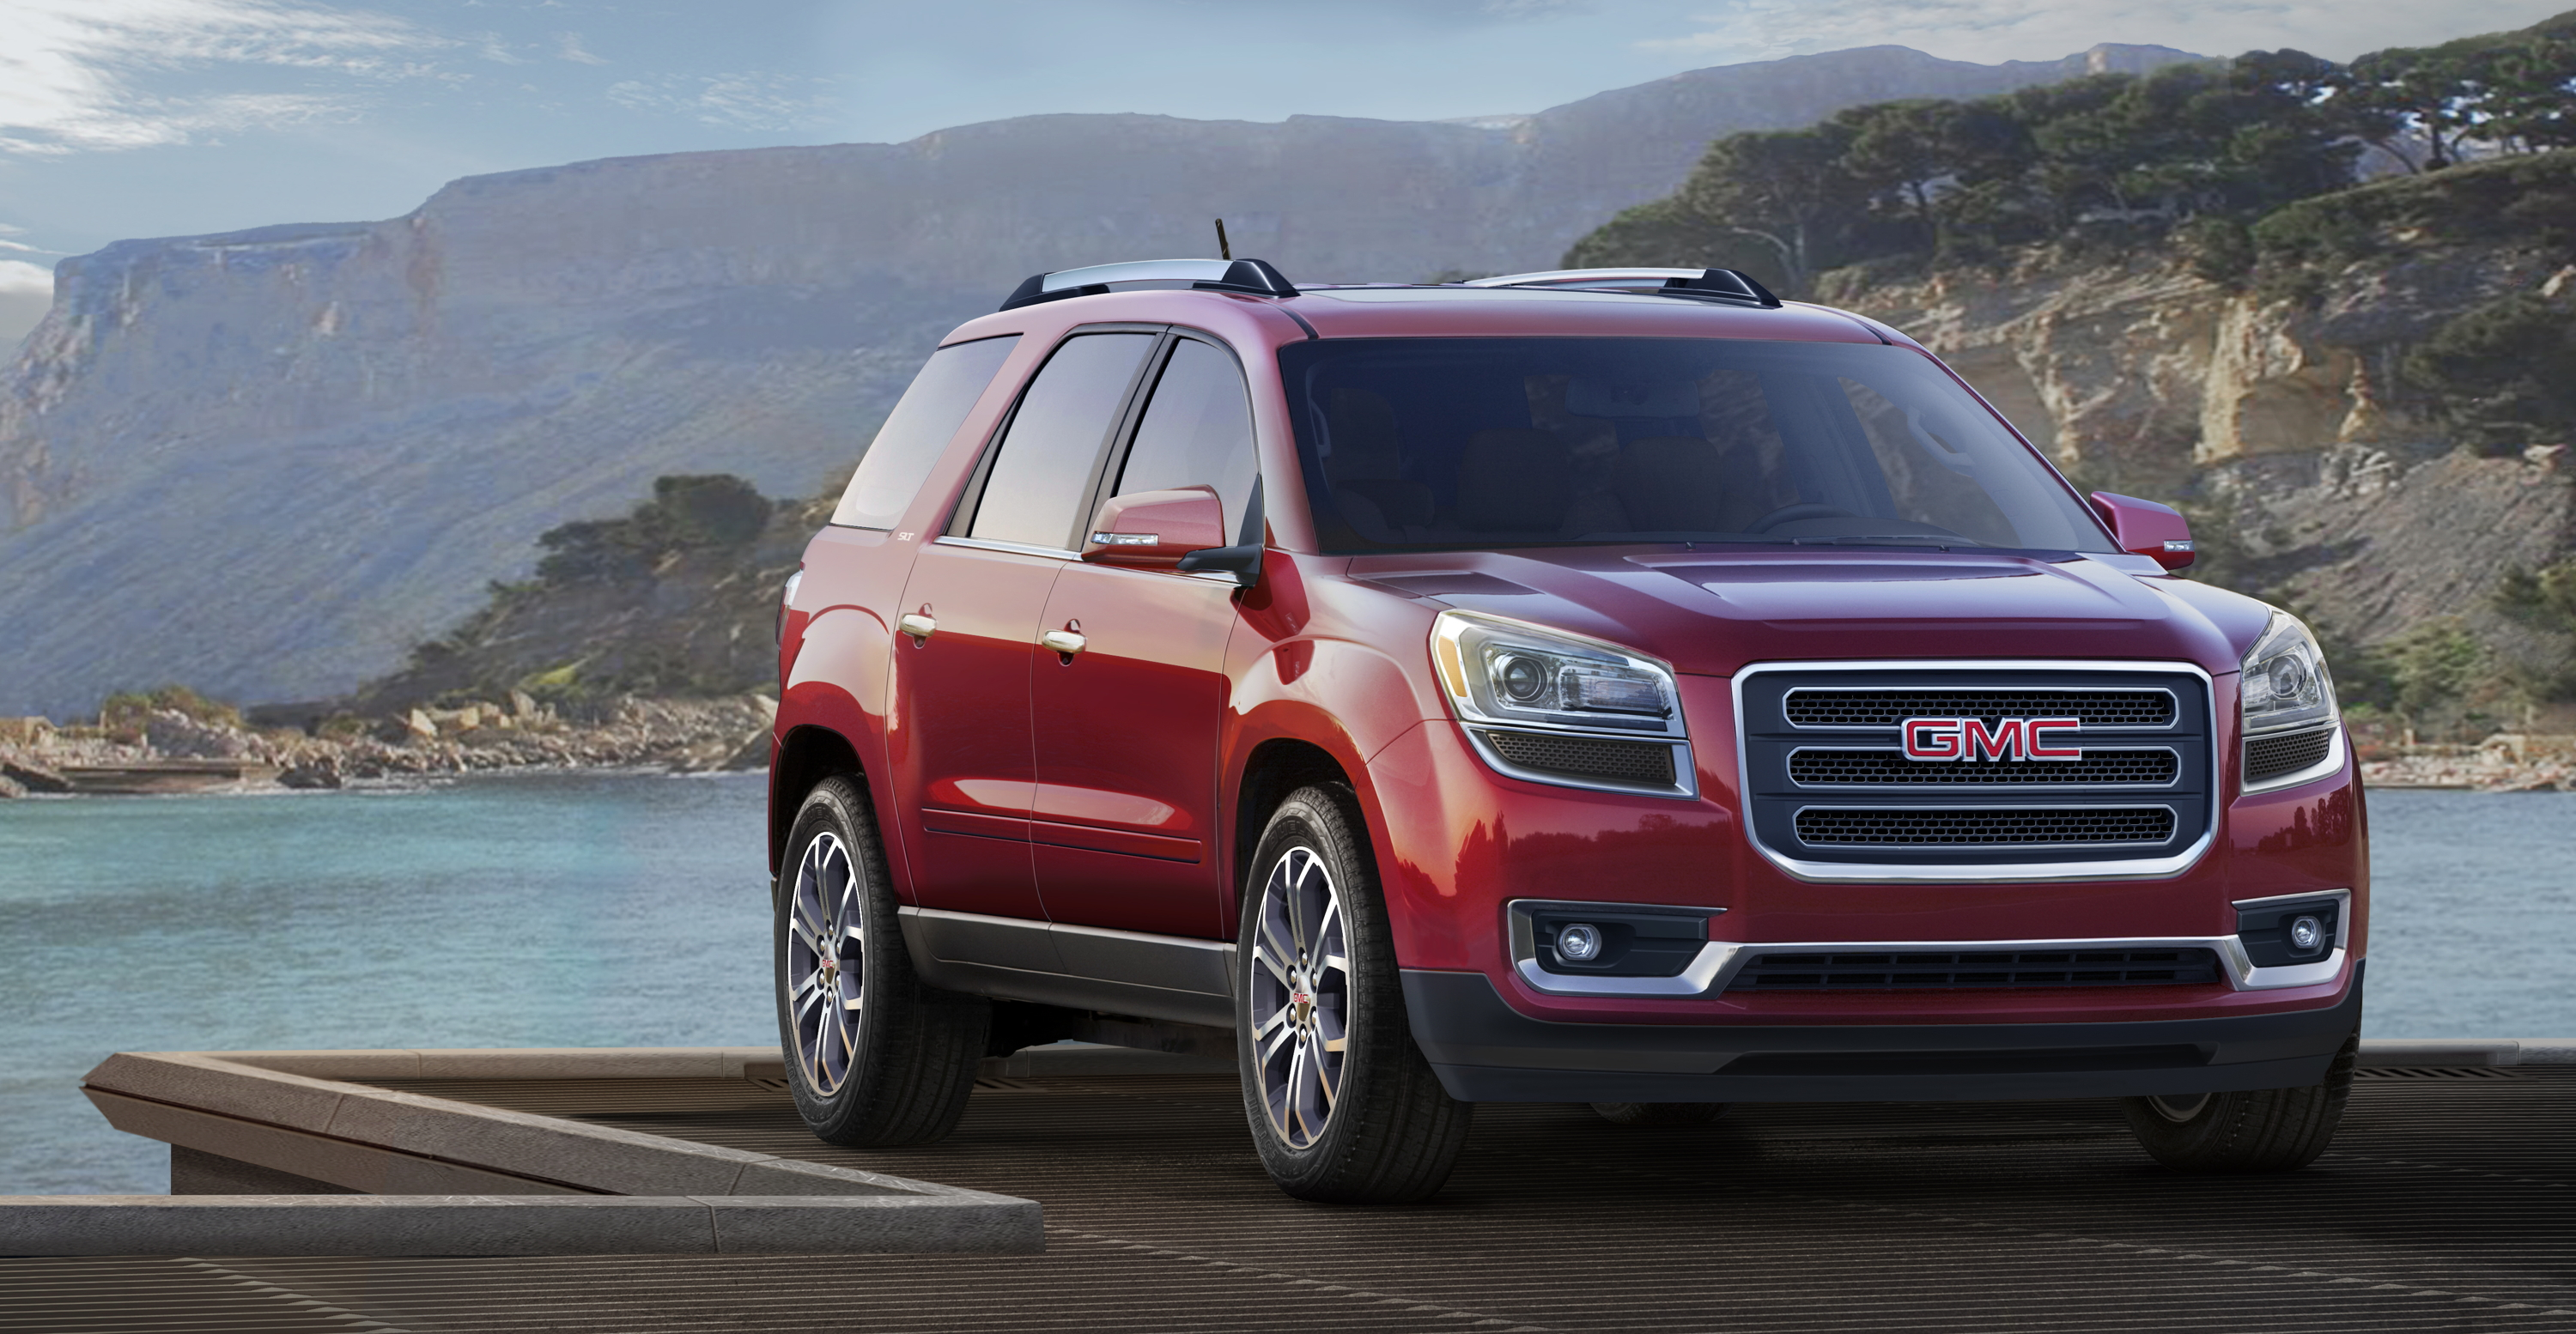 small suv make sharp slt st than acadia easier ratings before drive the to review footprint and smaller ns gmc a edmunds styling